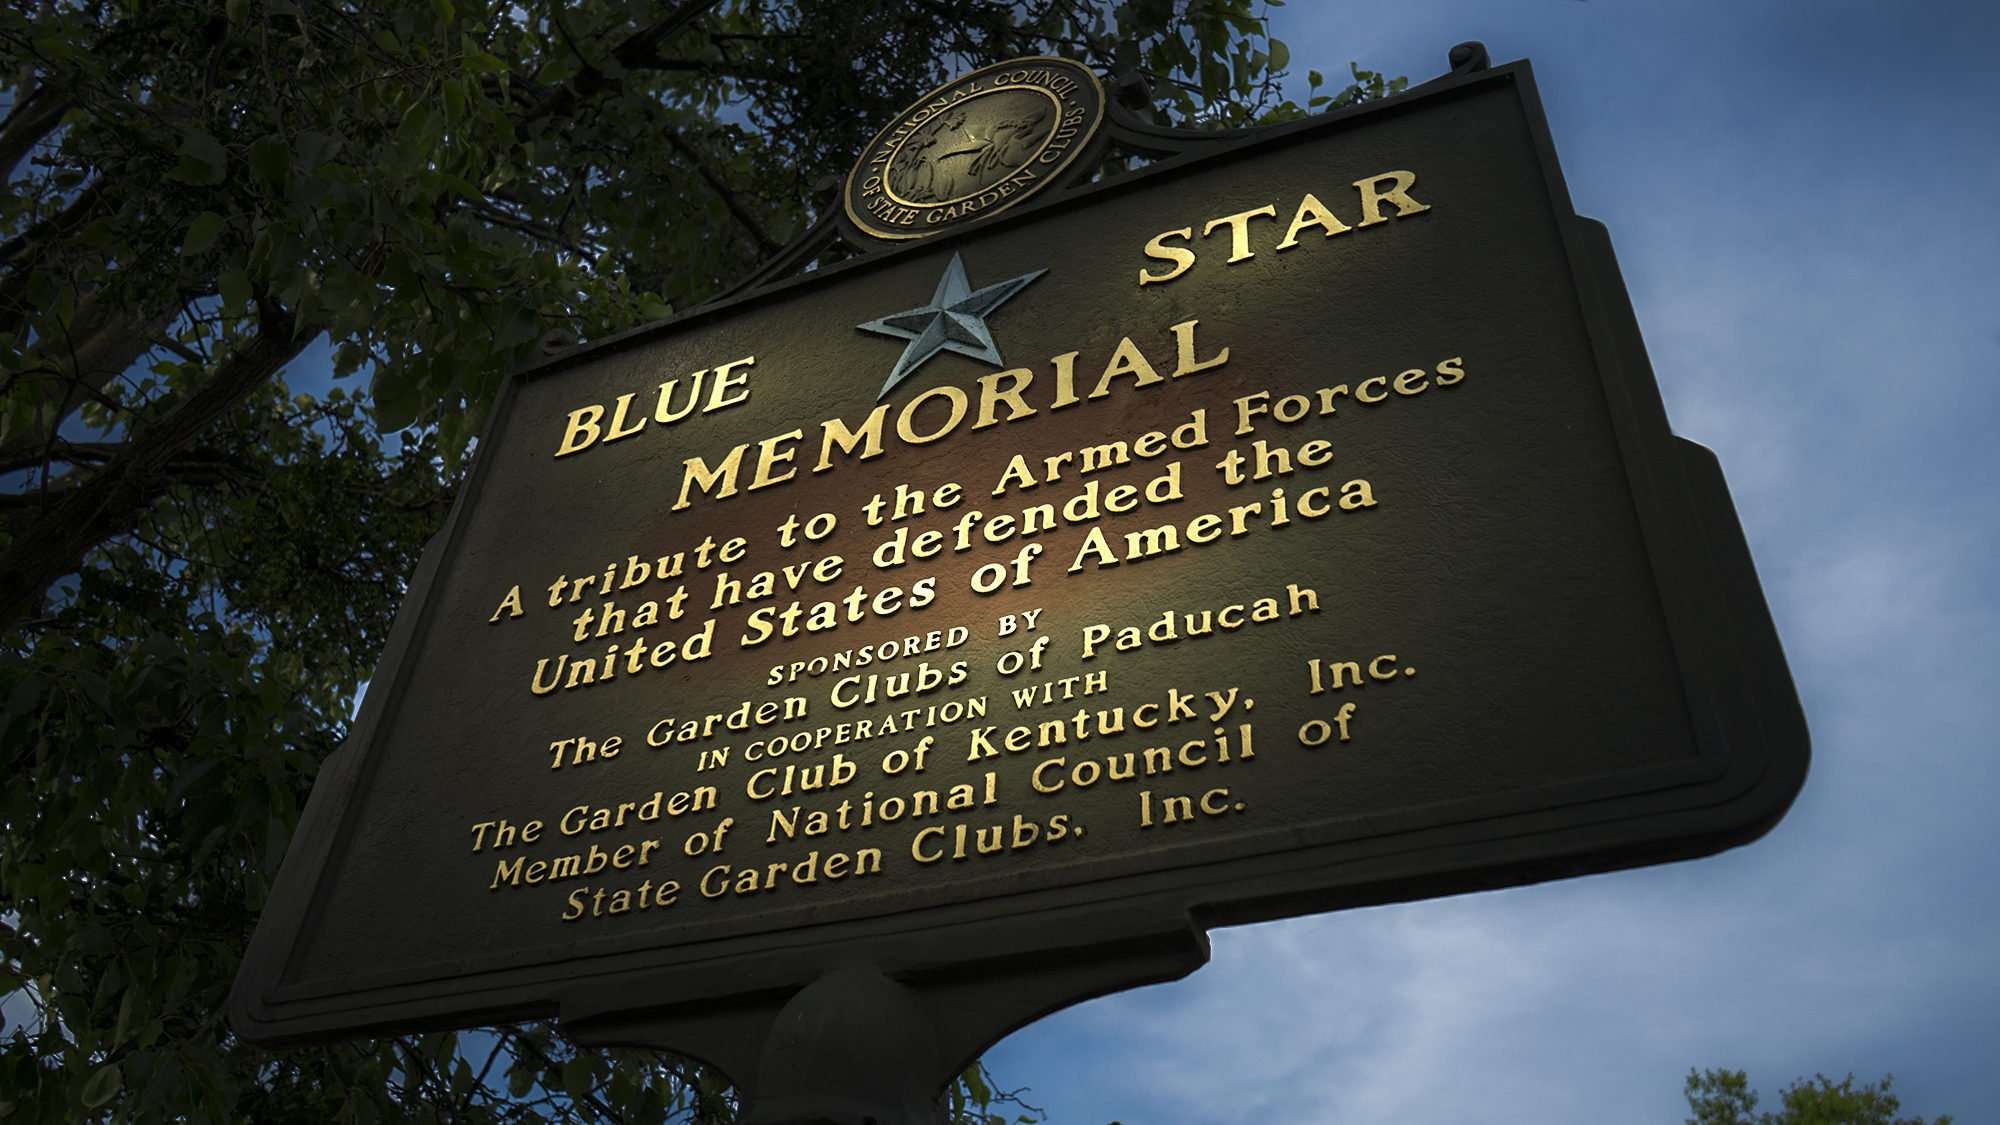 2017 - Blue Star Memorial and Tribute to the Armed Forces, downtown Paducah, KY/photonews247.com